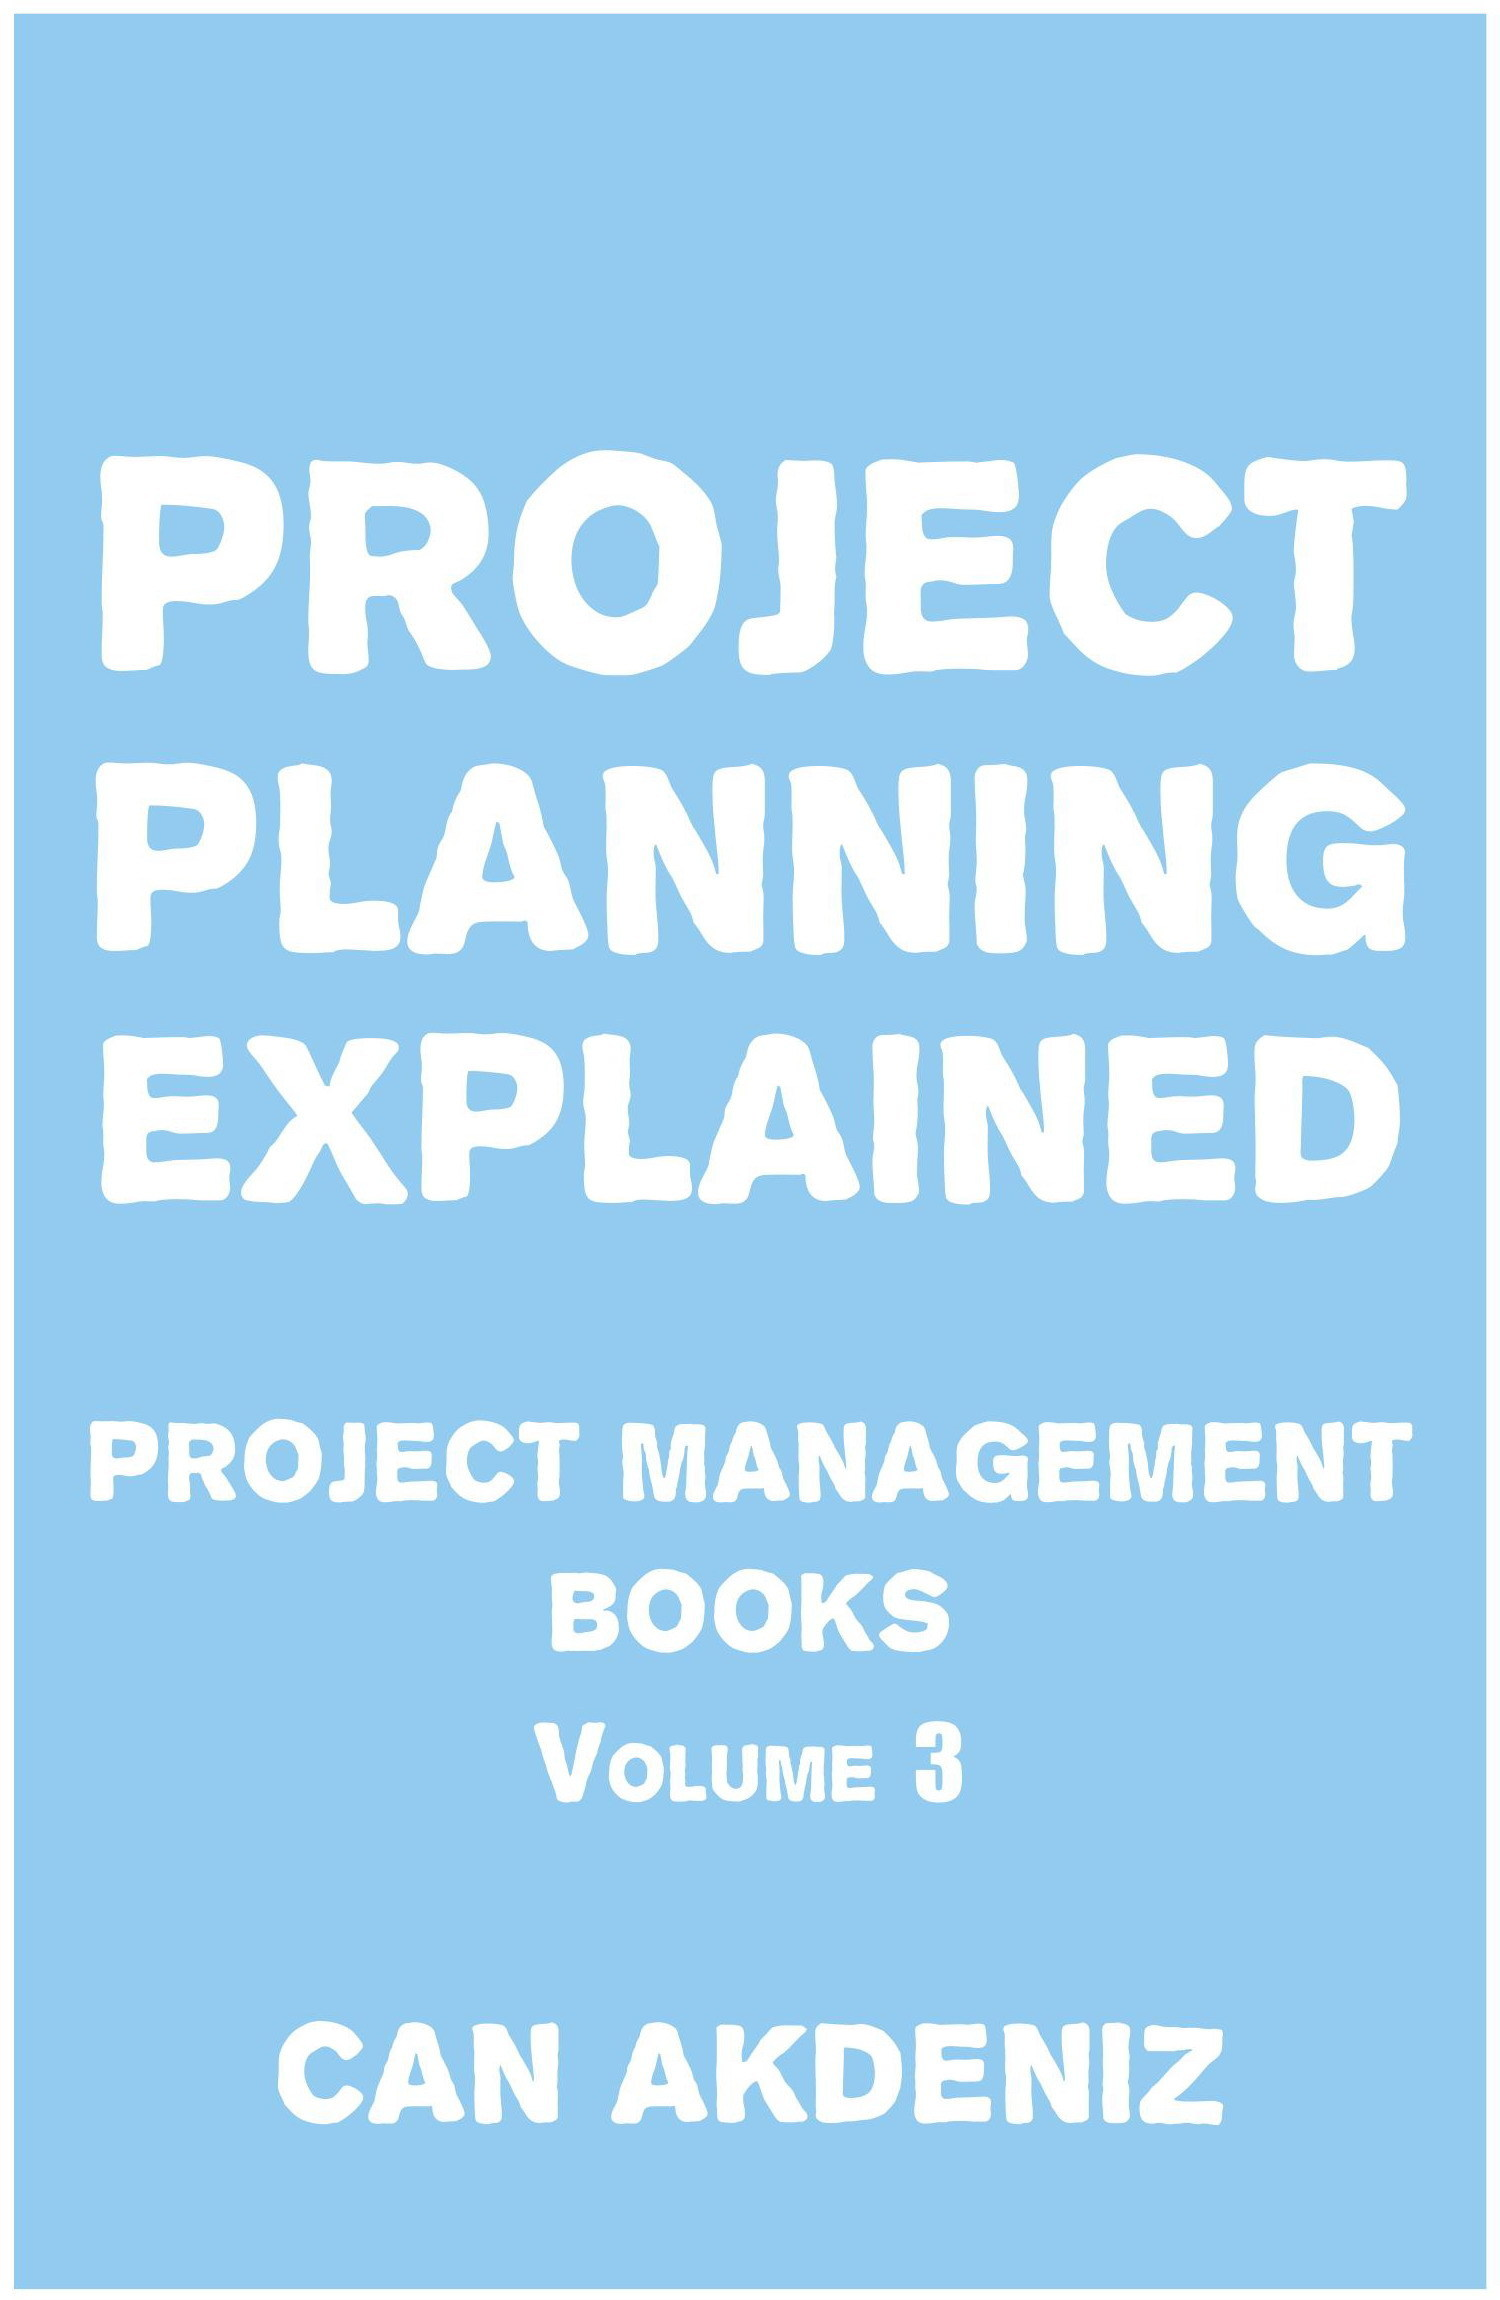 Project Planning Explained: Project Management Books Volume 3  by  Can Akdeniz